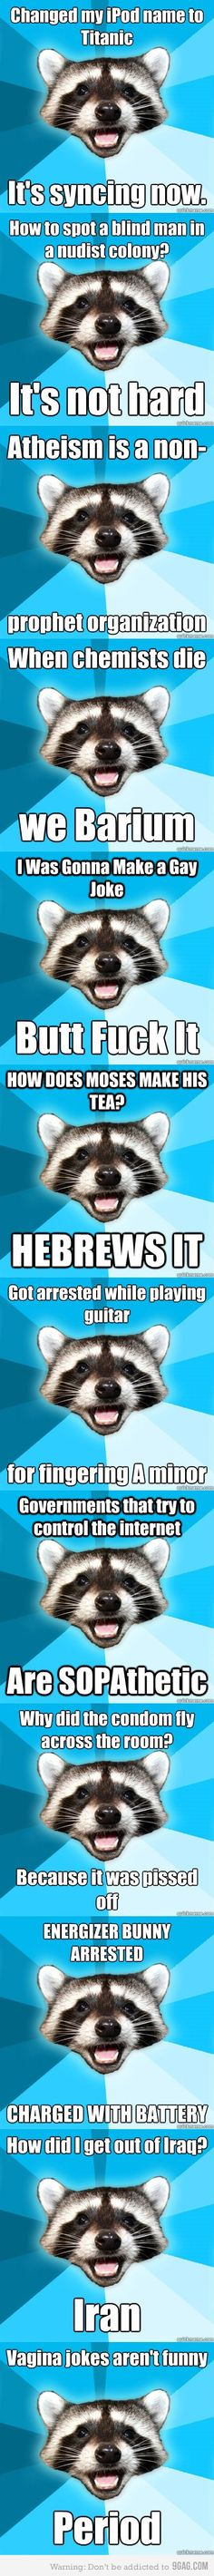 """Hahahaha. """"Got arrested while playing guitar.....for fingering A minor."""""""